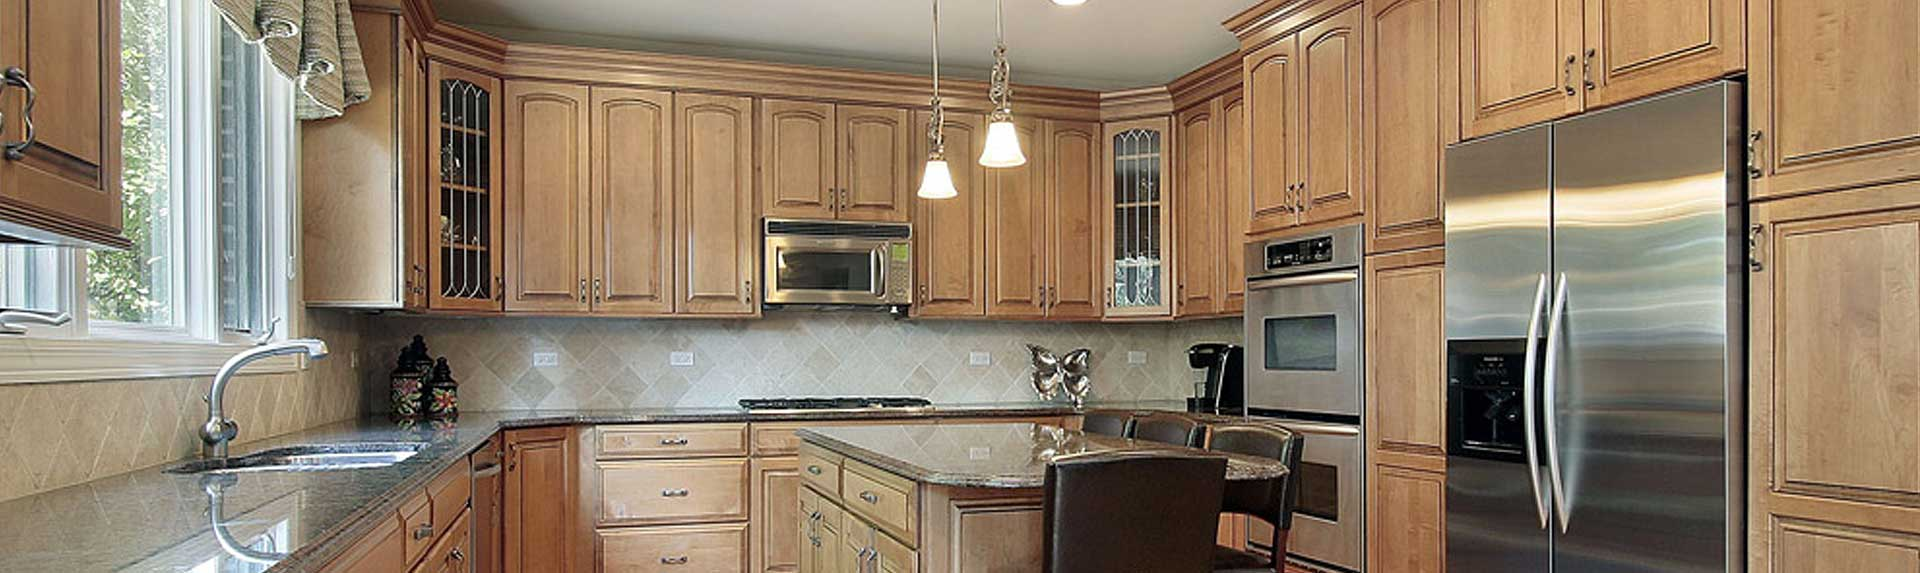 The Best Priced Replacement Doors For Kitchen Cabinets